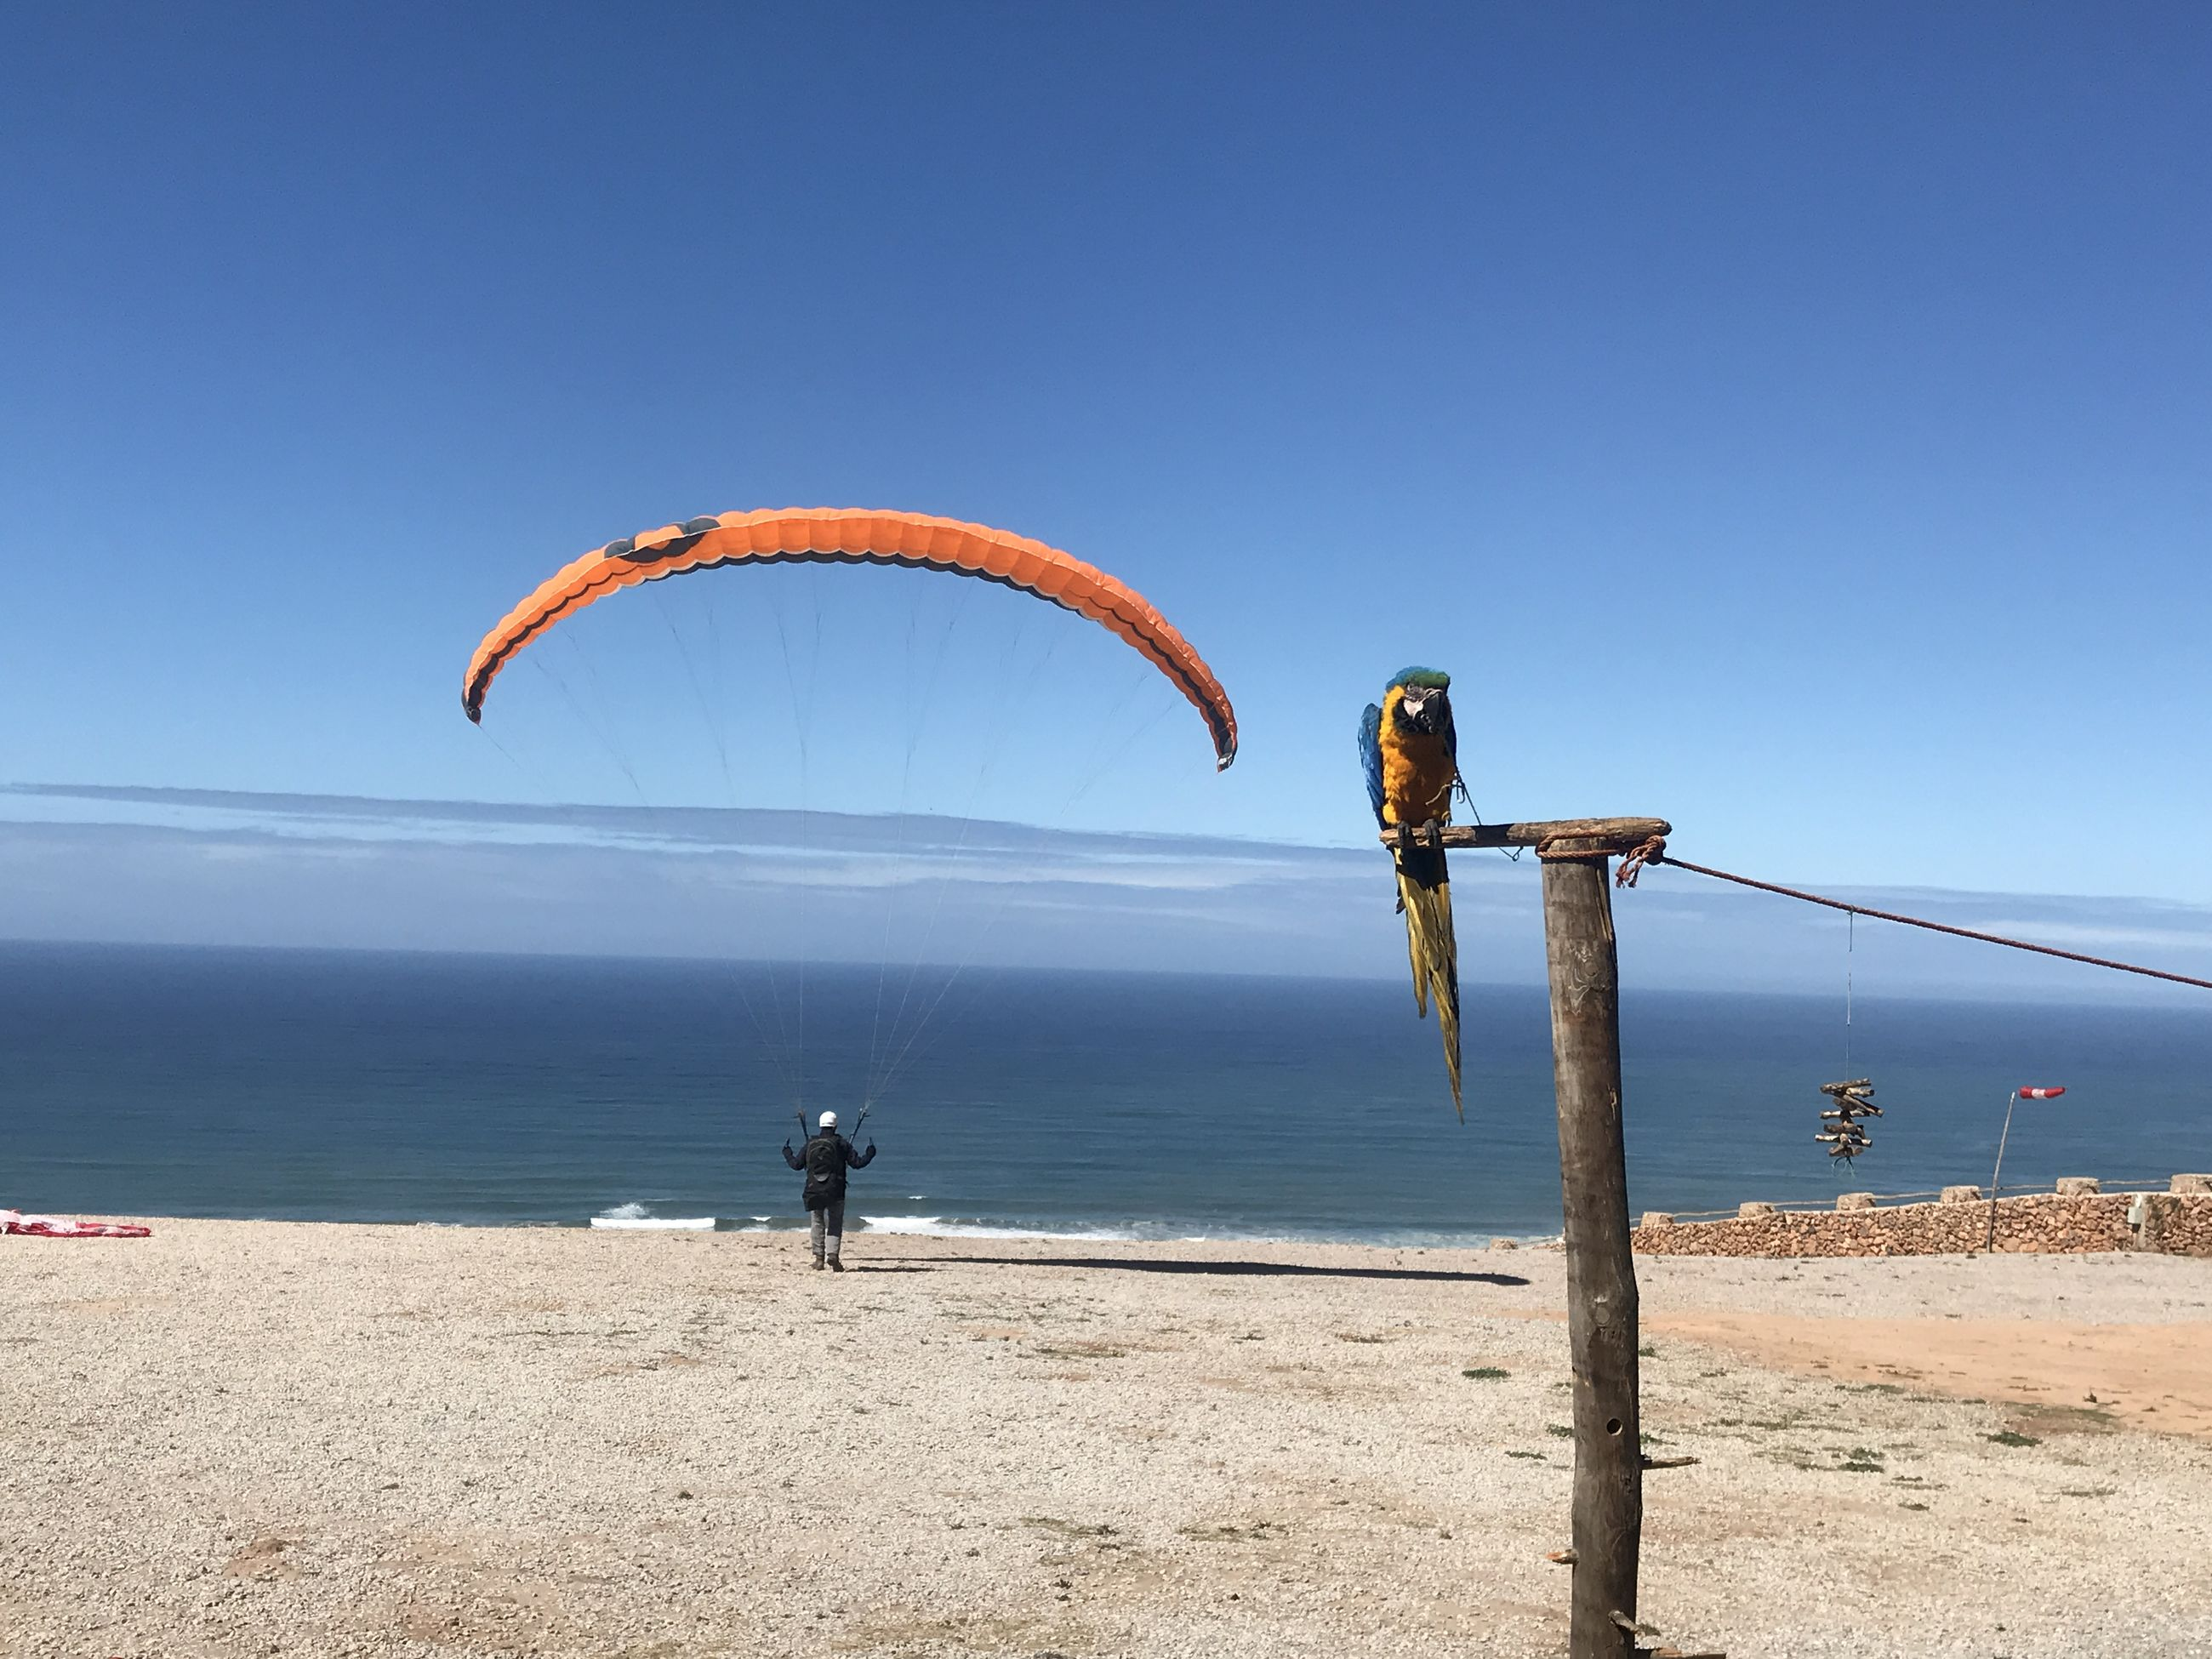 sky, sea, land, water, parachute, beach, nature, scenics - nature, paragliding, blue, day, beauty in nature, extreme sports, sport, adventure, clear sky, copy space, real people, horizon over water, outdoors